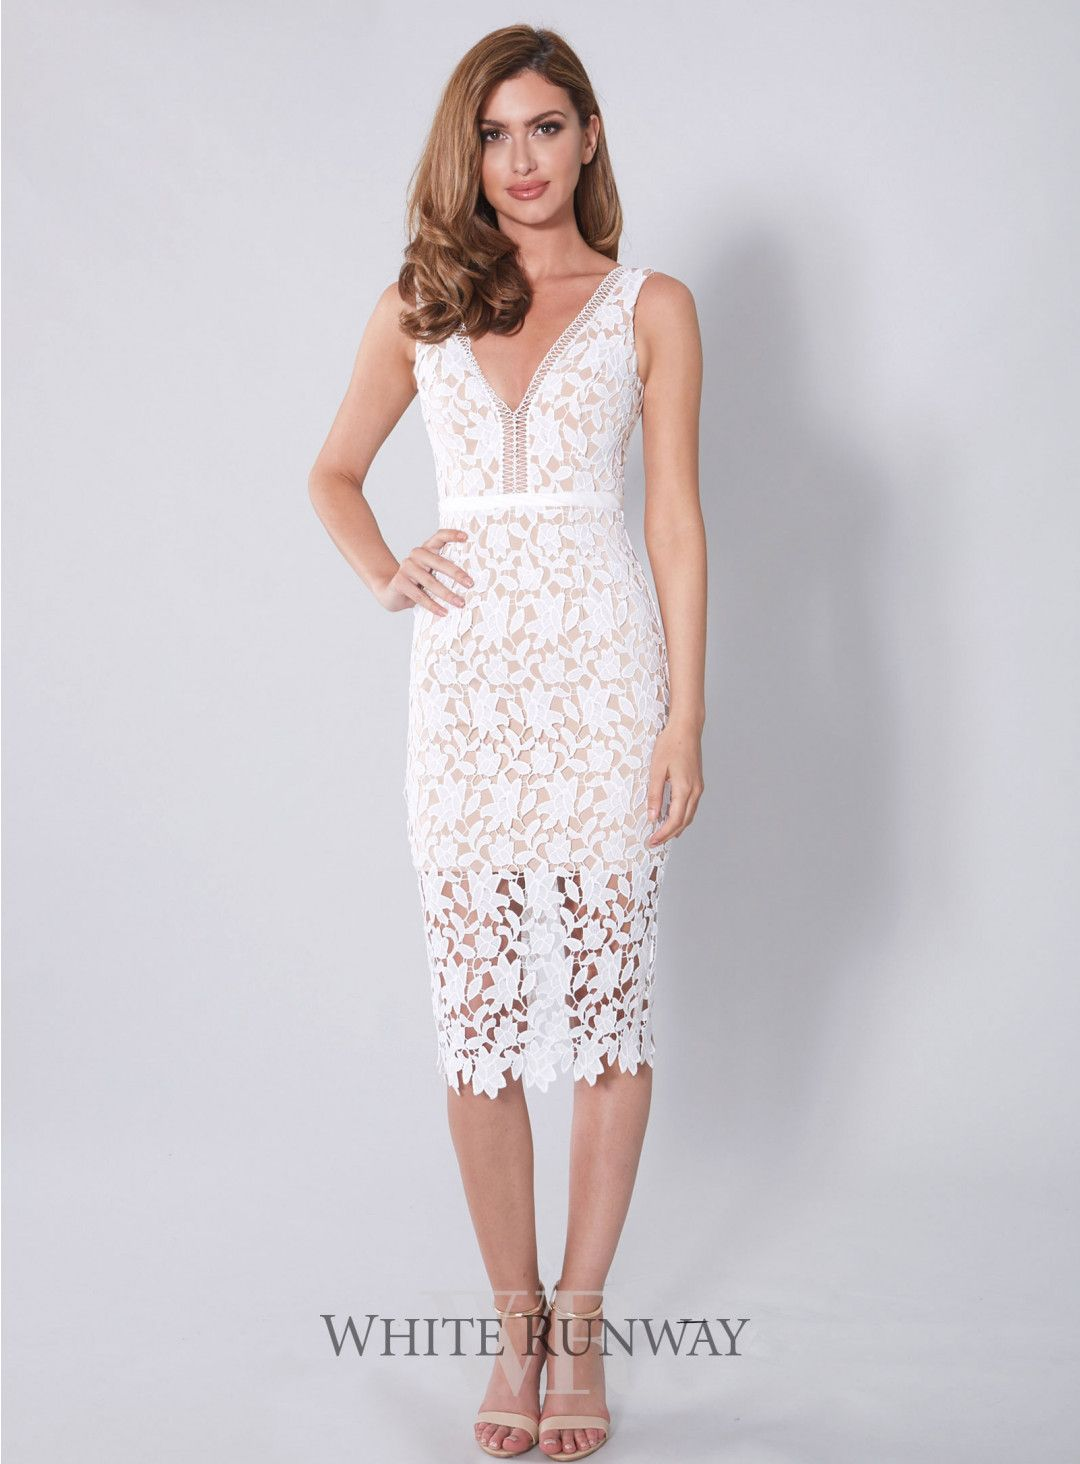 Cocktail length lace overlay dress